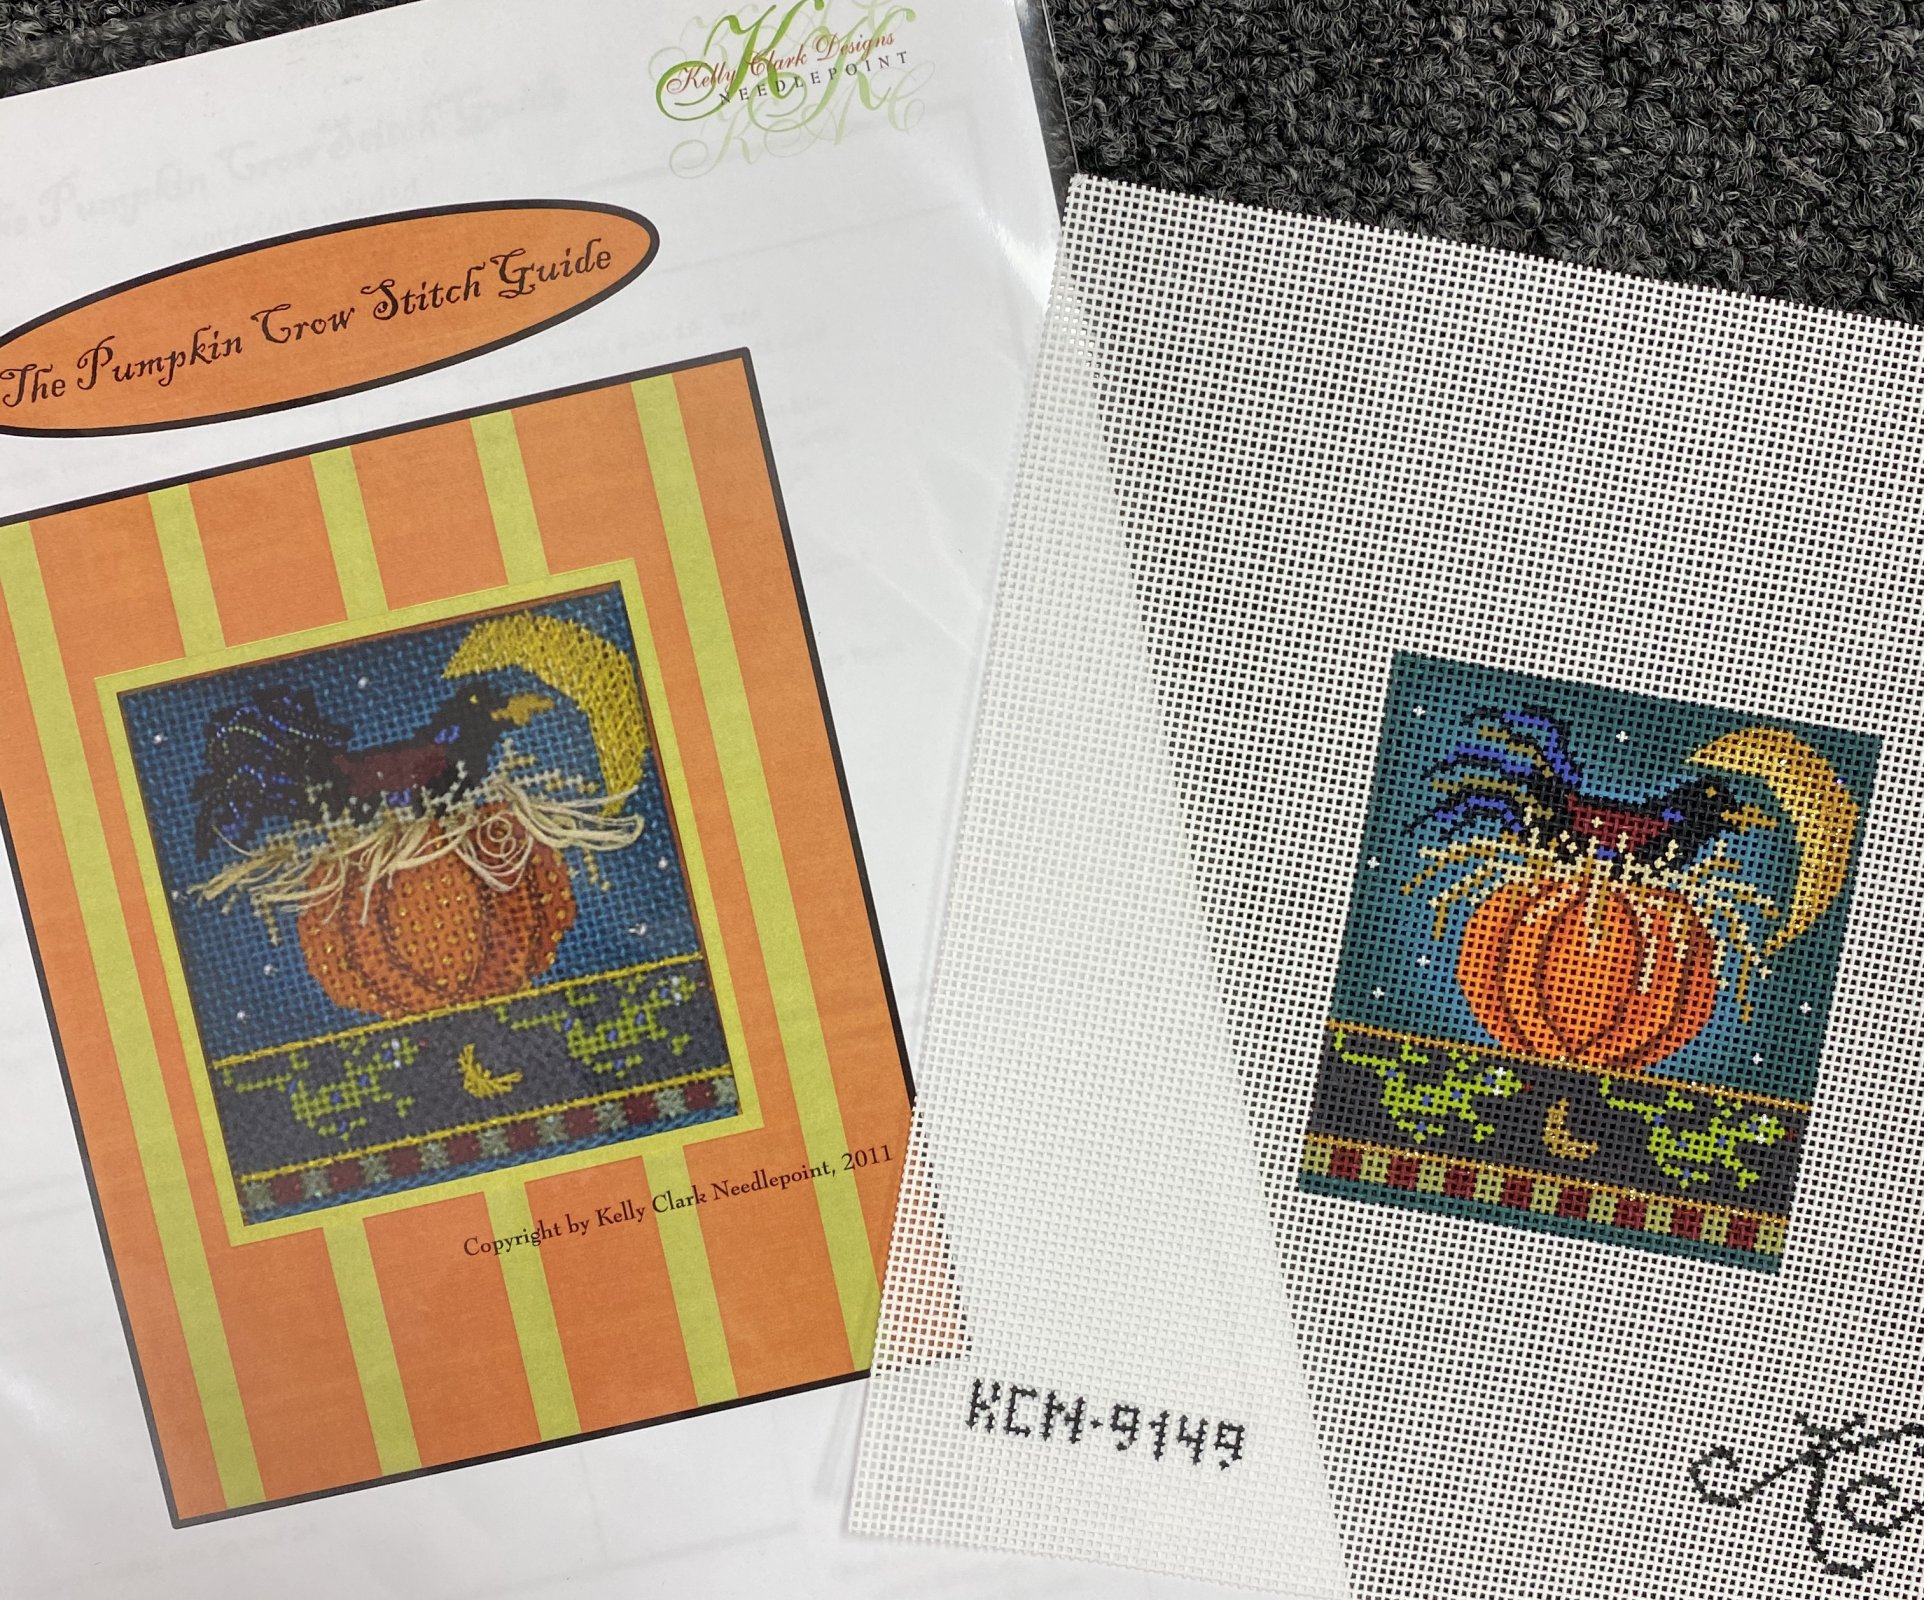 Pumpkin Crow, and Stitch Guide,18 ct.,3x3.25